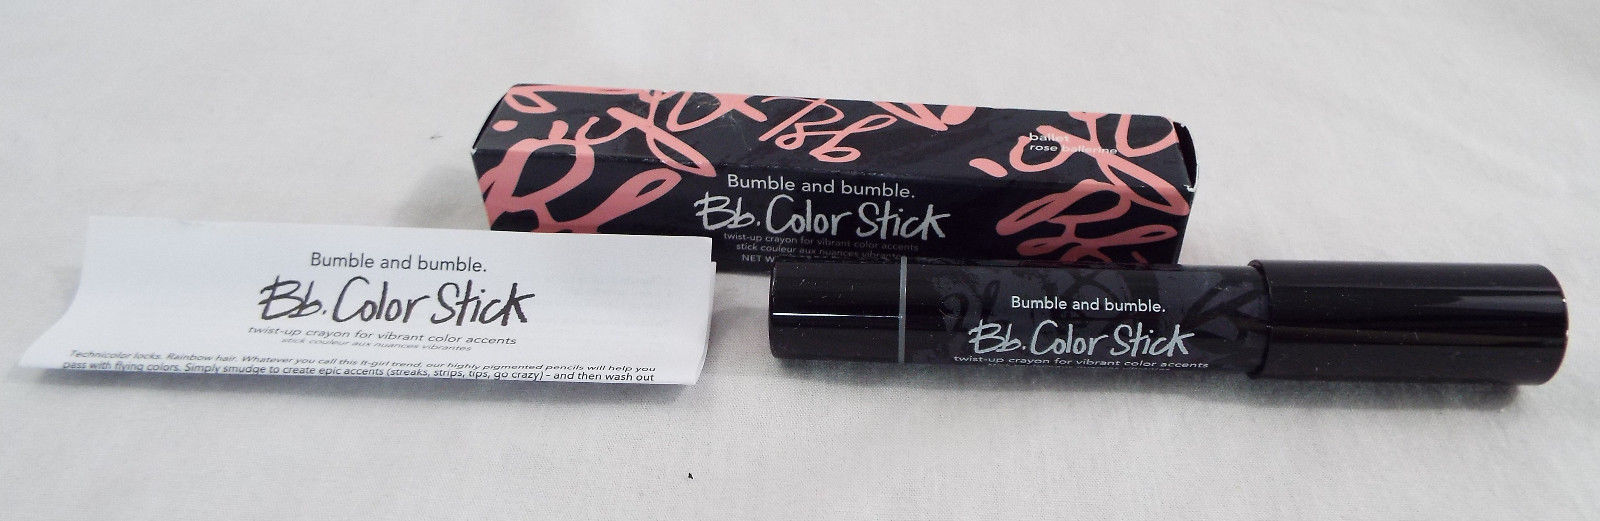 Primary image for Bumble and Bumble Color Stick in Ballet Pink 0.12 oz